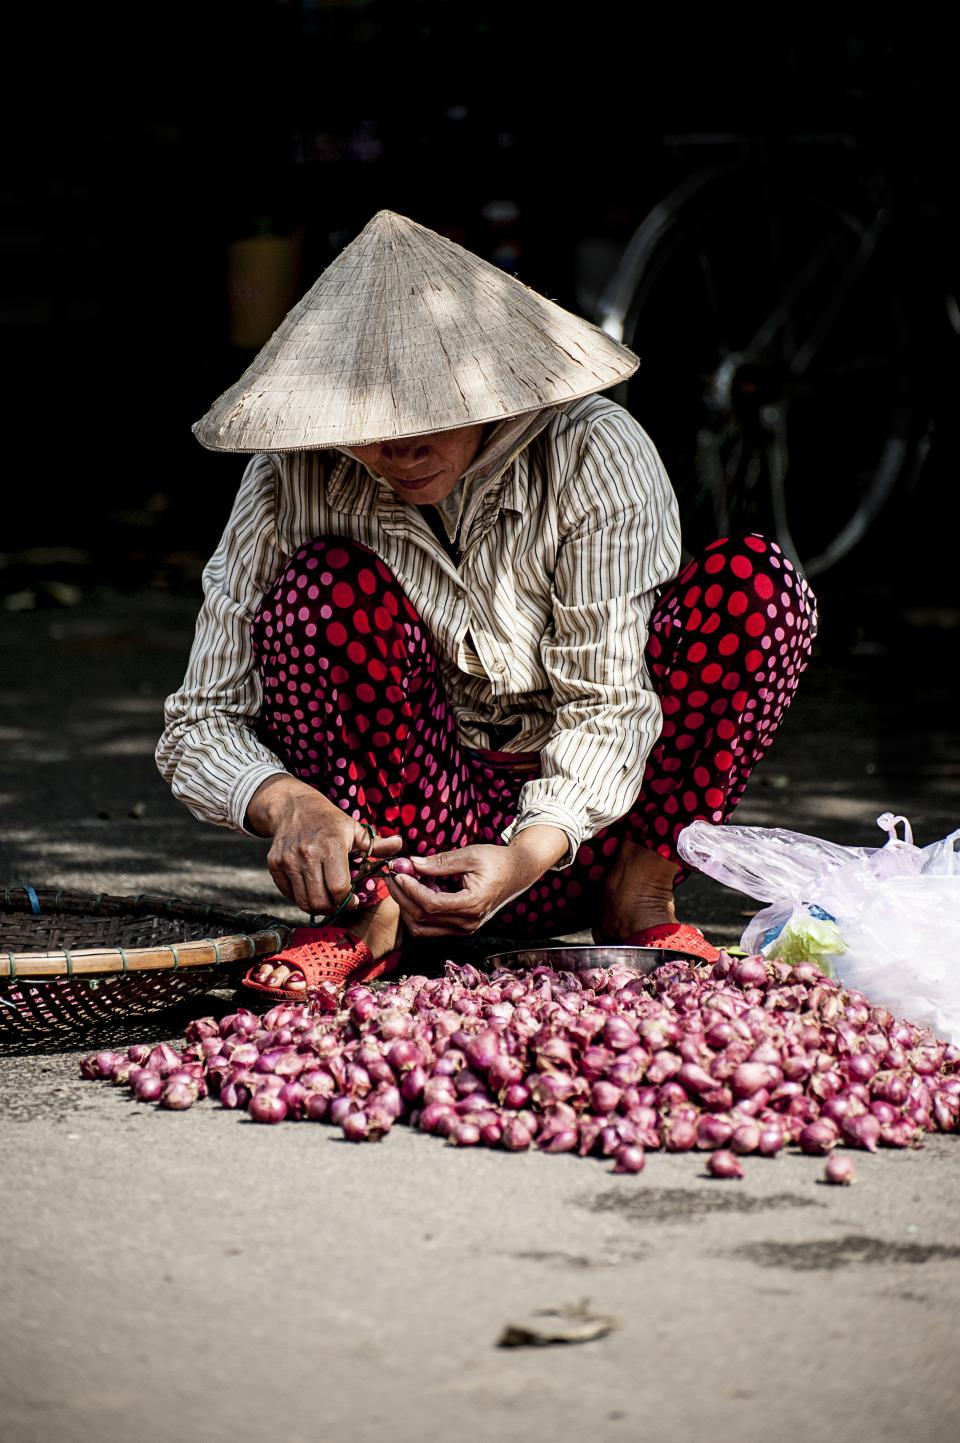 people, woman, labor, onion, poor, sad, vendor, farmer